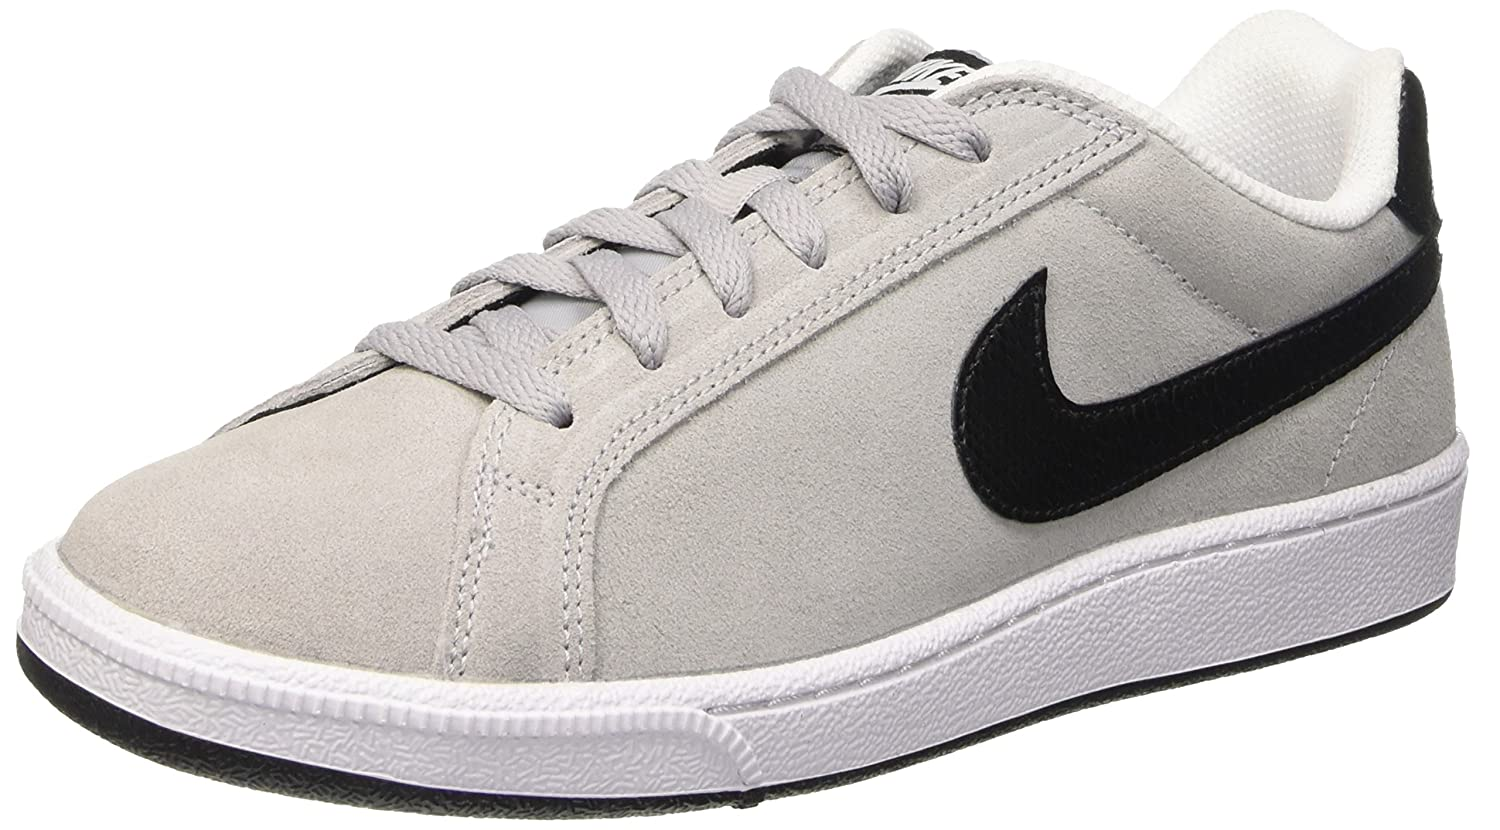 13d8c4ec Nike COURT MAJESTIC SUEDE Beige Suede Leather Men Sneakers Shoes:  Amazon.co.uk: Sports & Outdoors